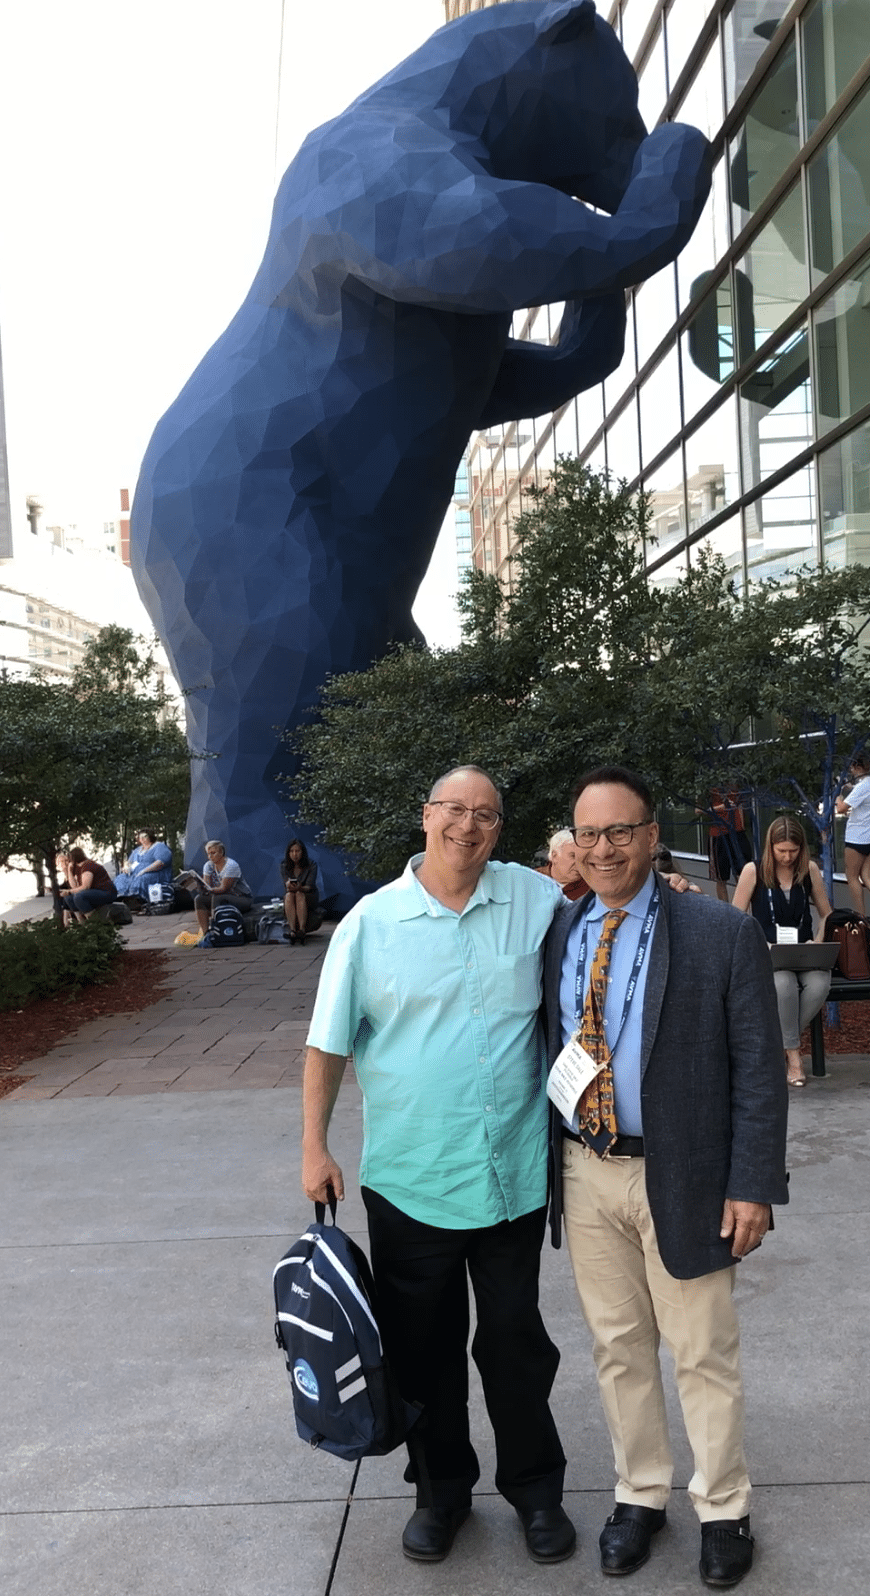 Dr. Heiblum and Steve Dale at AVMA